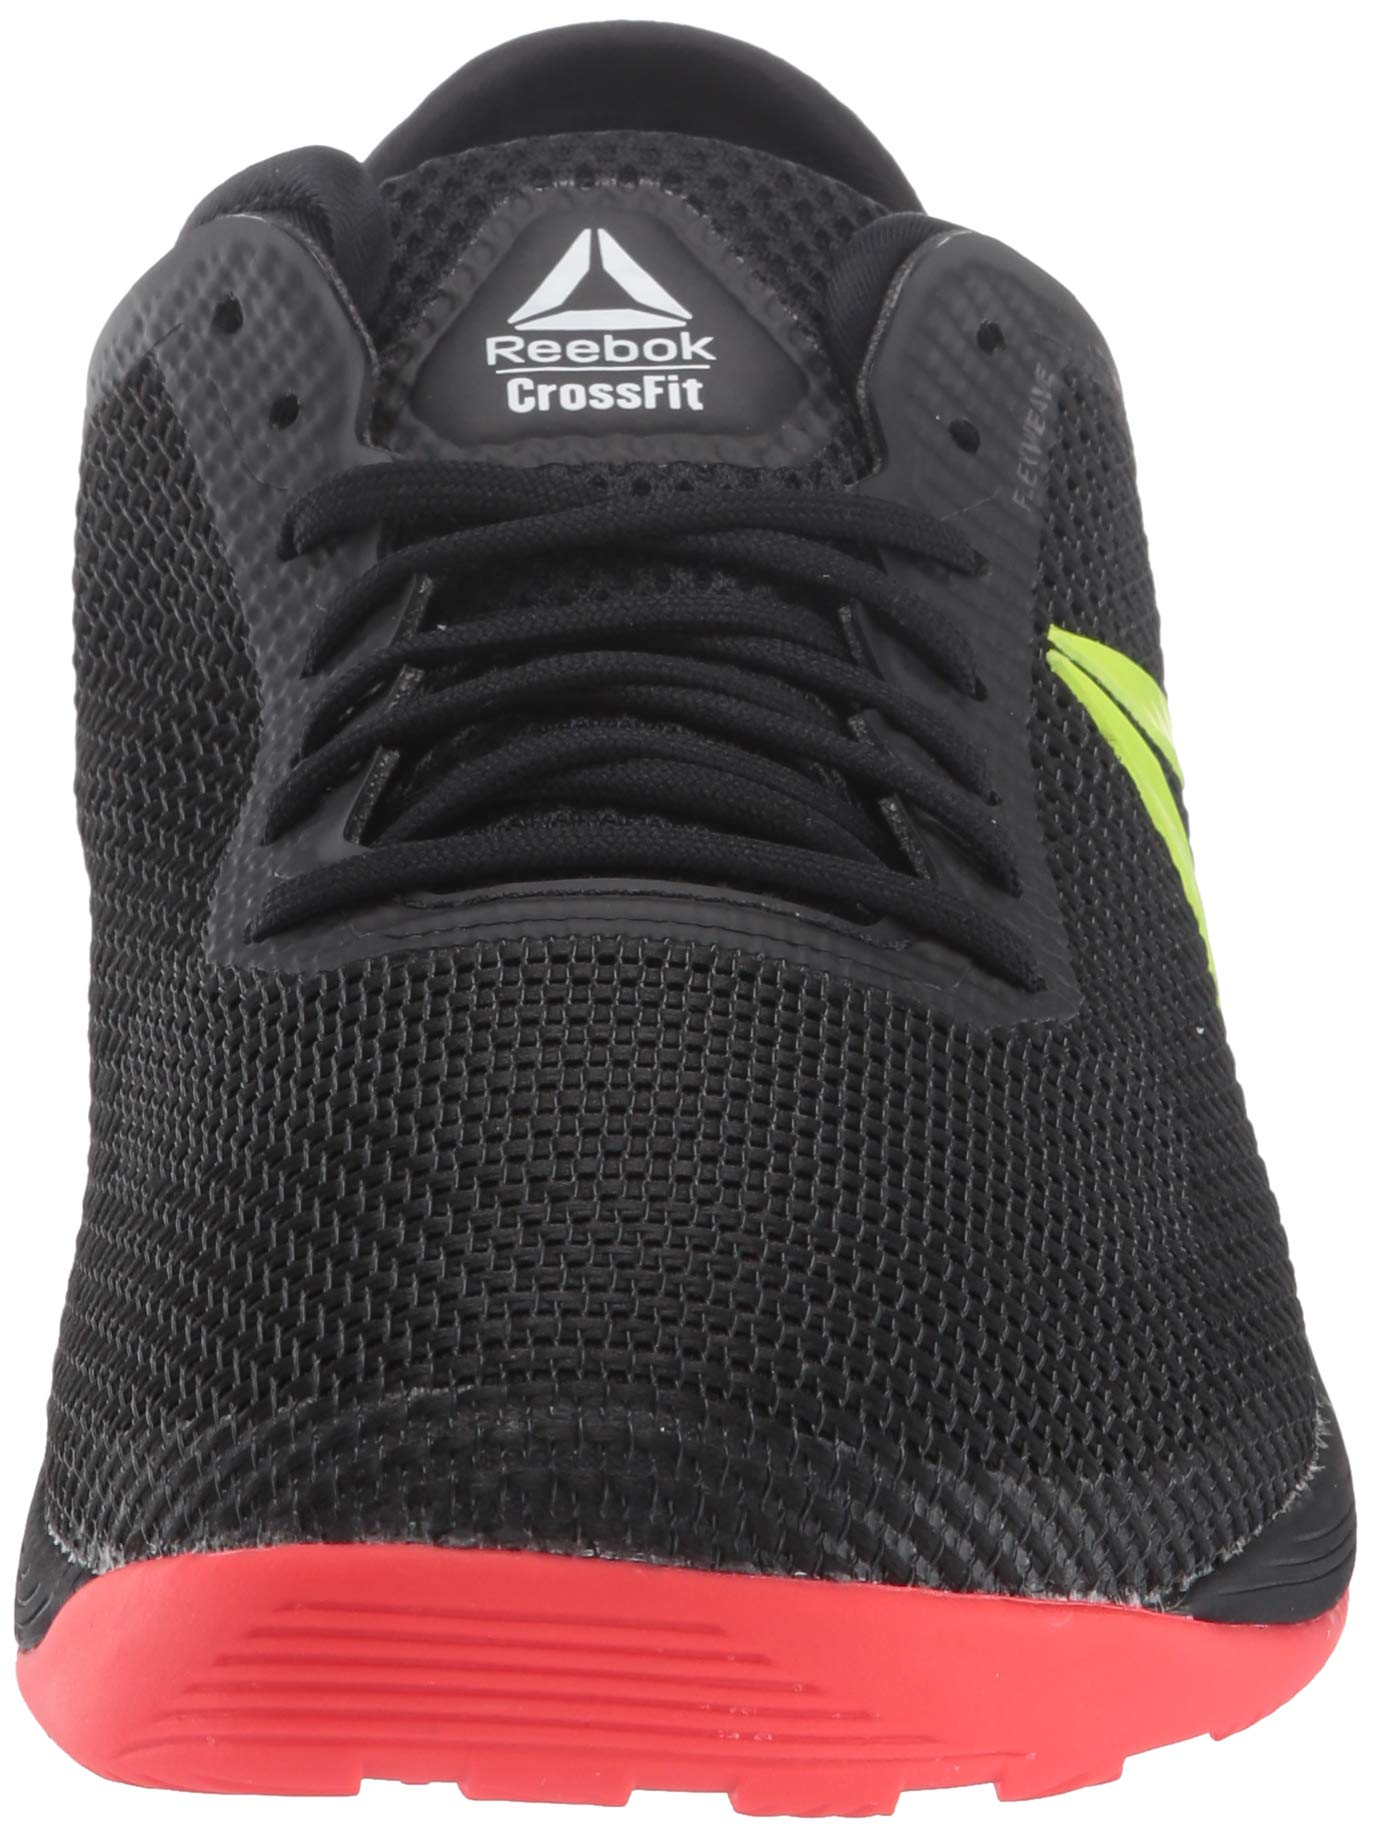 Reebok Men's CROSSFIT Nano 8.0 Flexweave Cross Trainer, Black/Neon Red/Neon Lime/White, 6.5 M US by Reebok (Image #4)